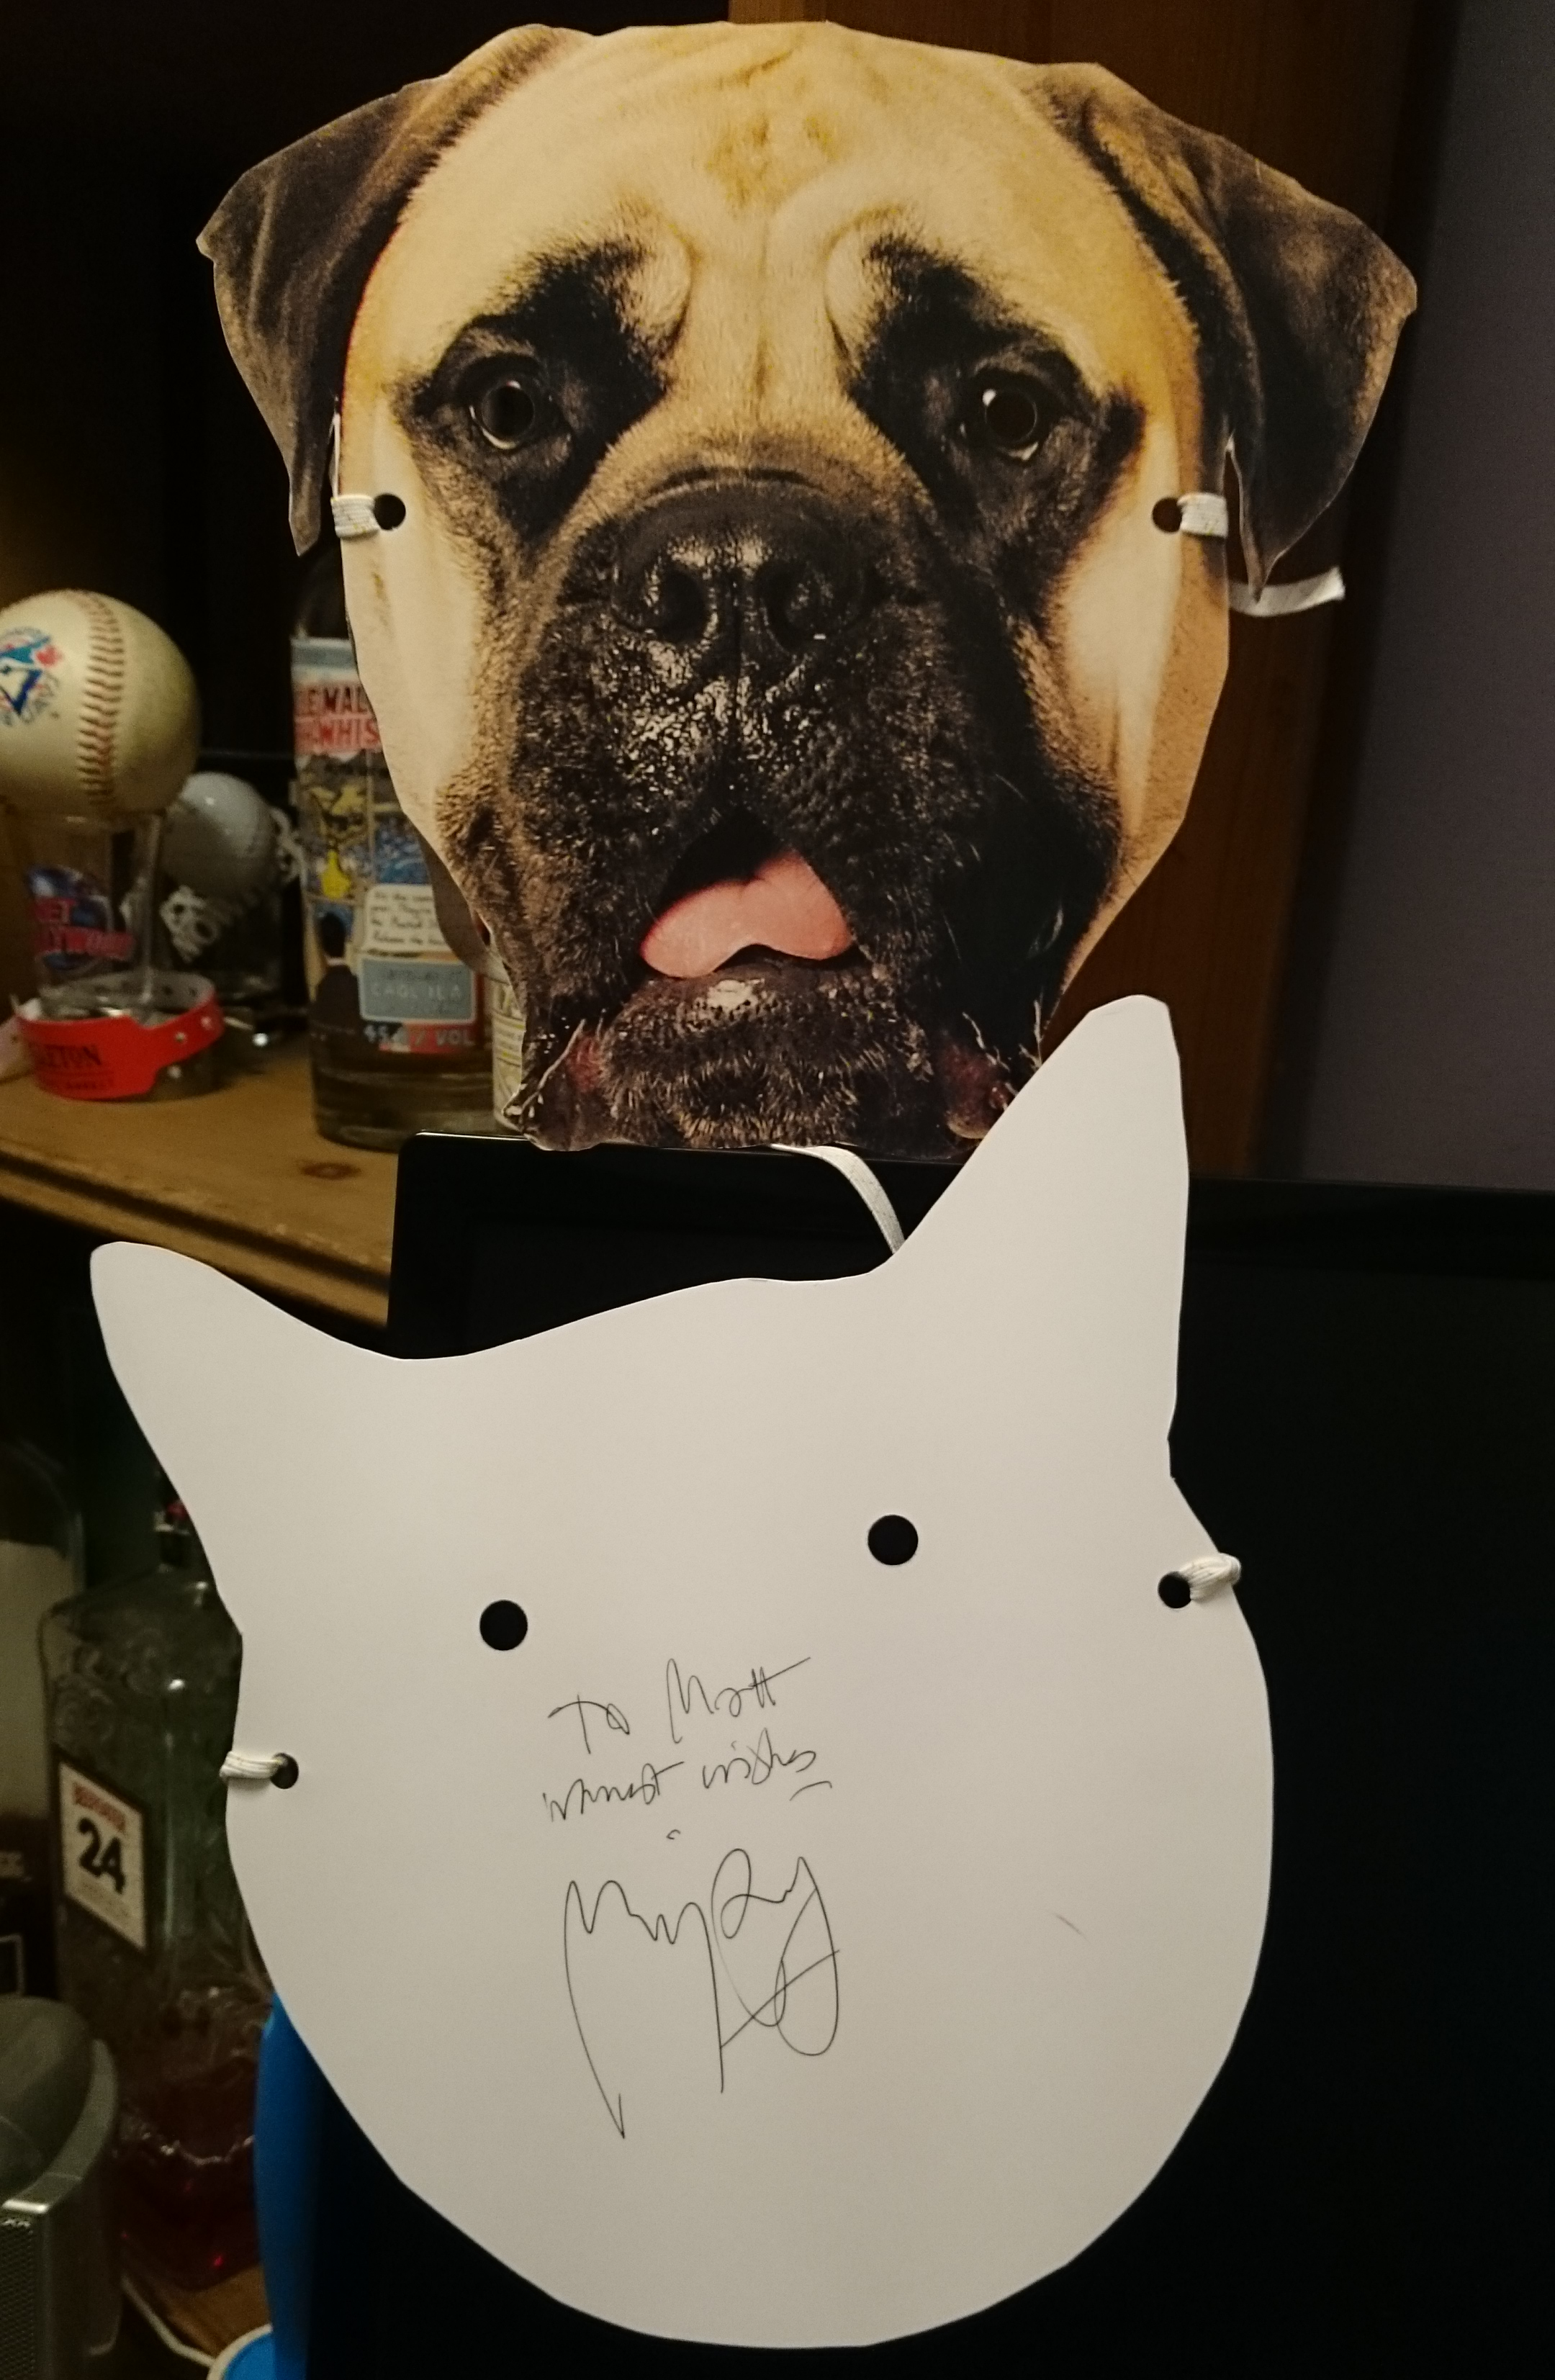 At the screening we were given Mr Whiskersand Bosco masks, despite my dislike of cats, I got a cat one... Bright side, I got director Marjane Satrapi to sign it for me. She is a big cat person.